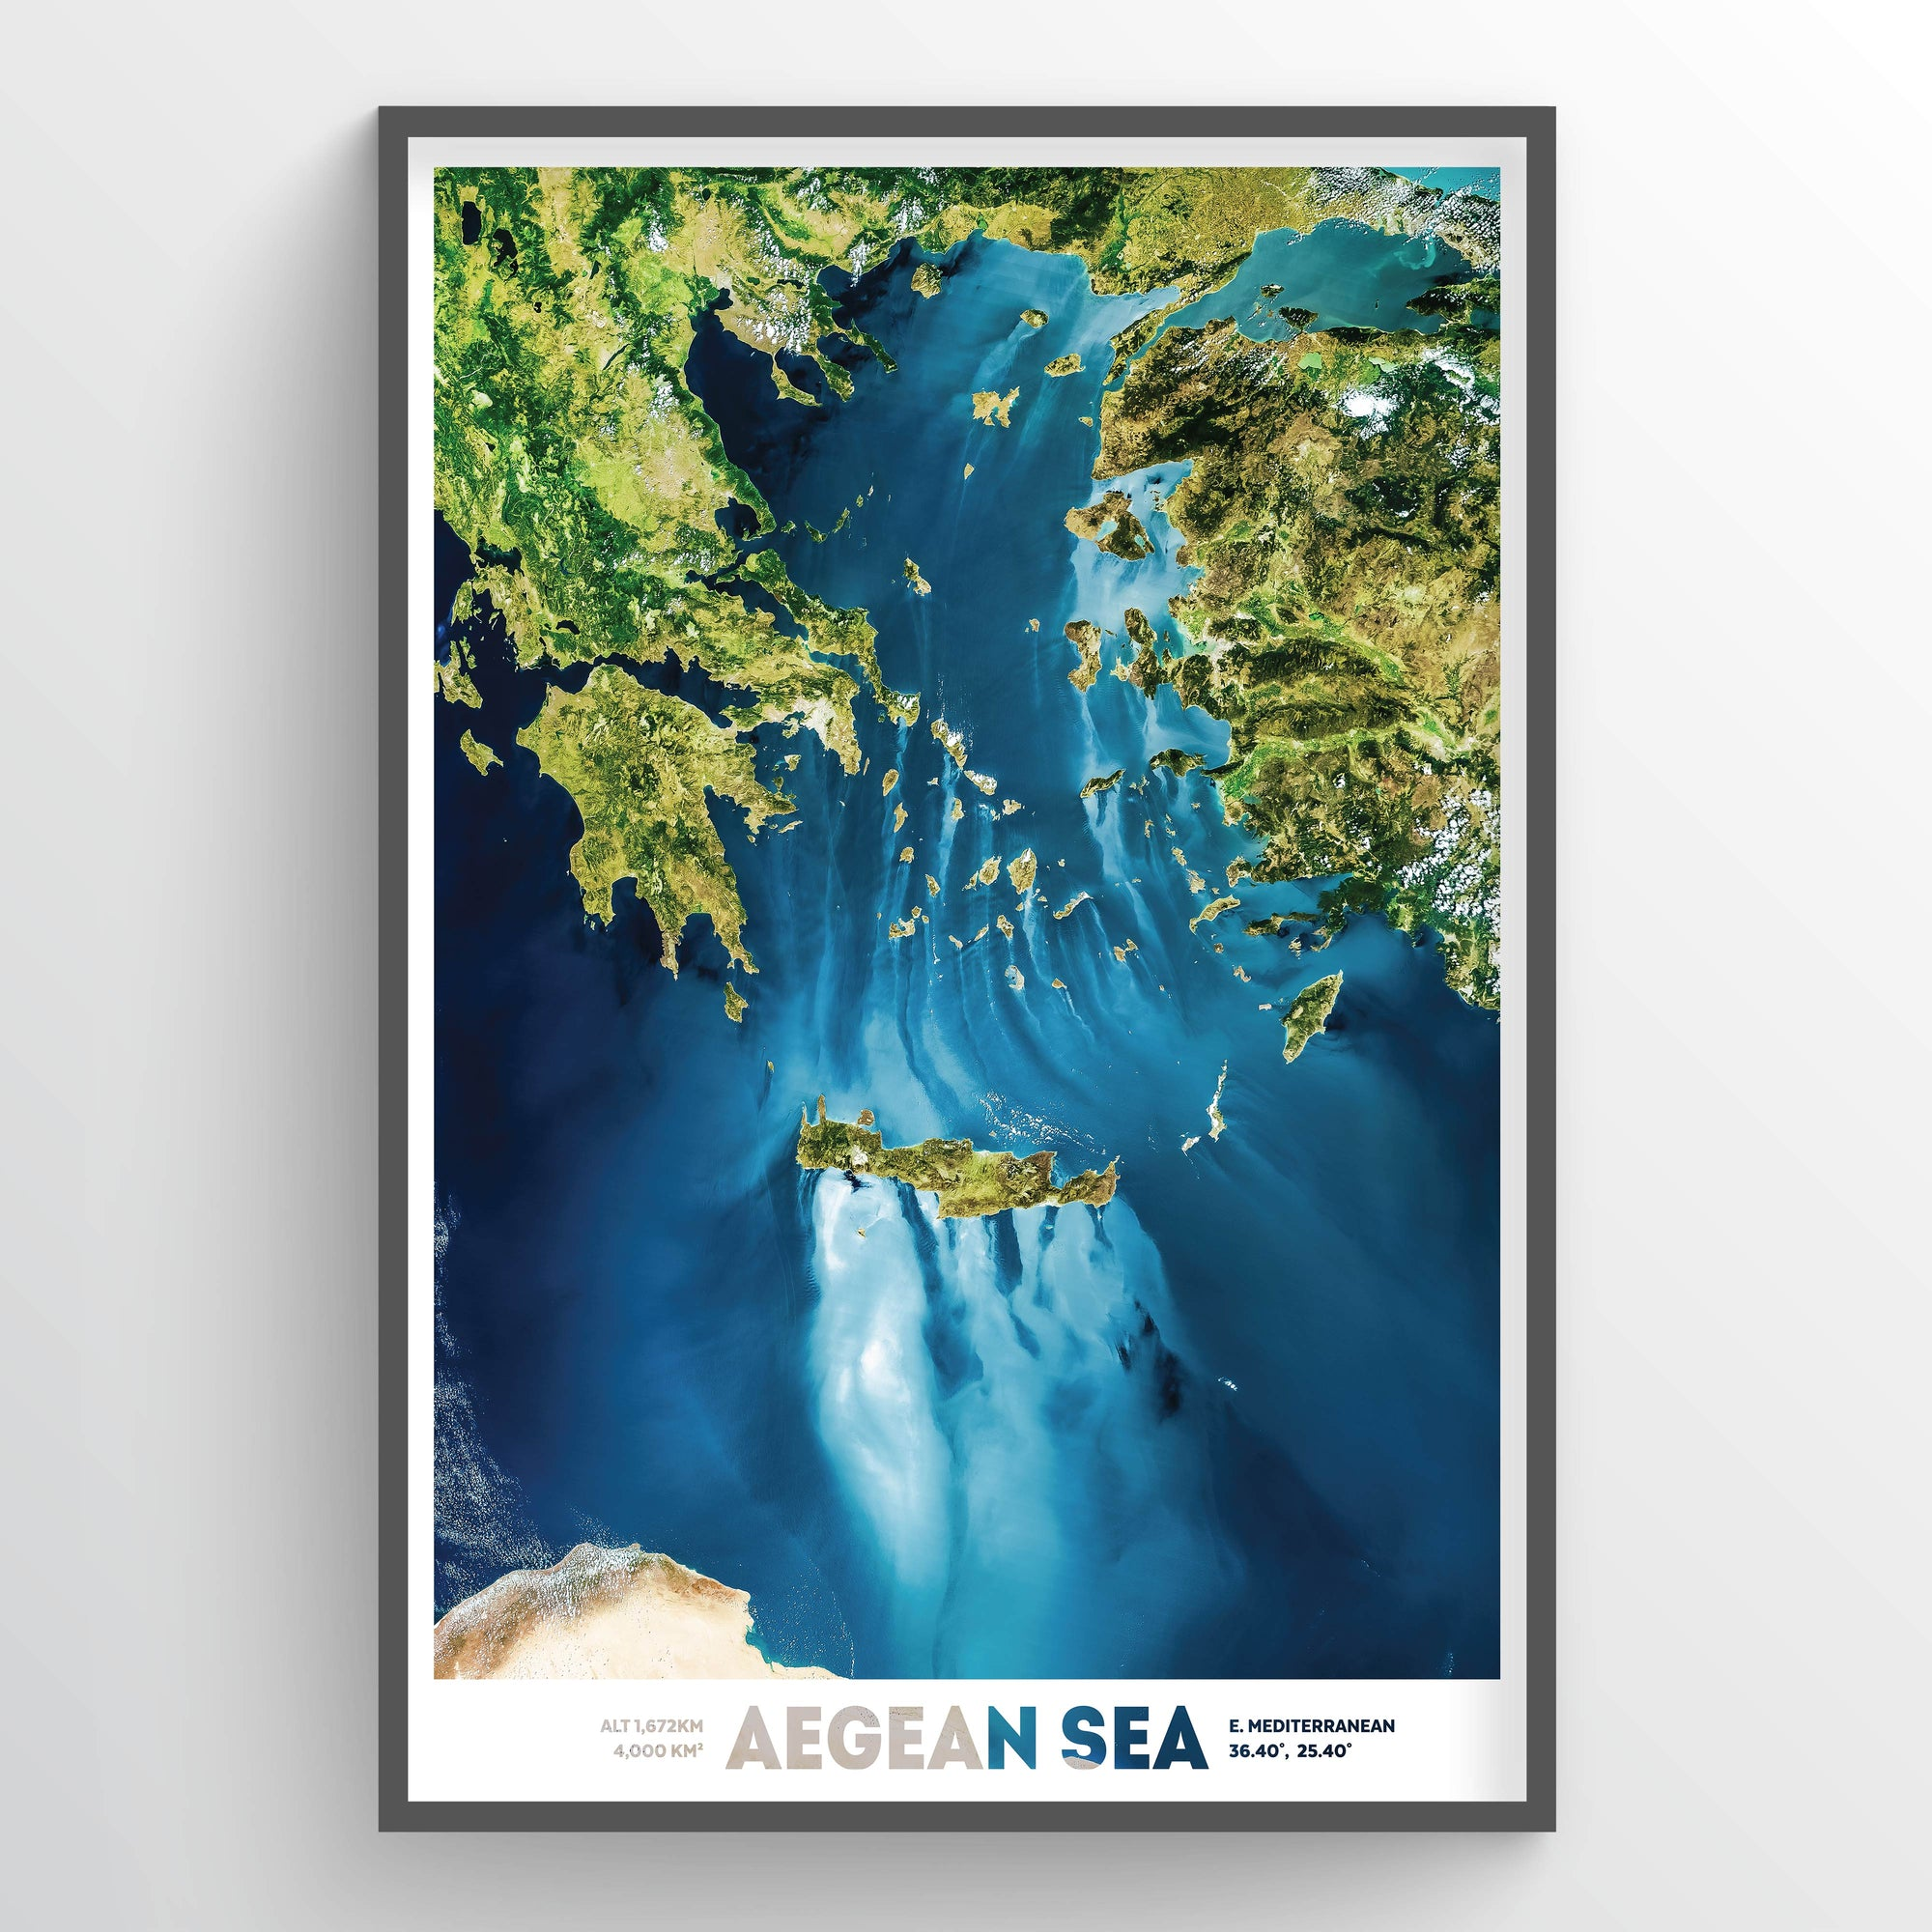 Aegean Sea Earth Photography - Art Print - Point Two Design